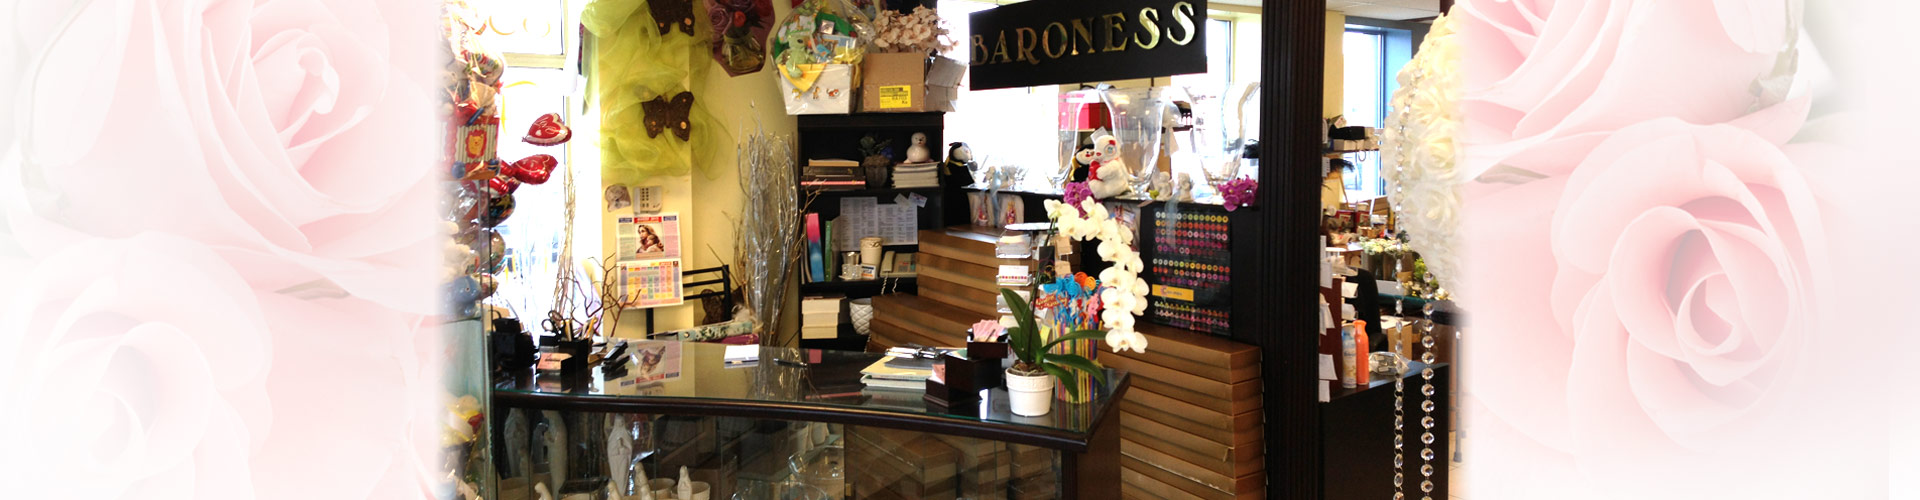 Store interior with showcase and decorations